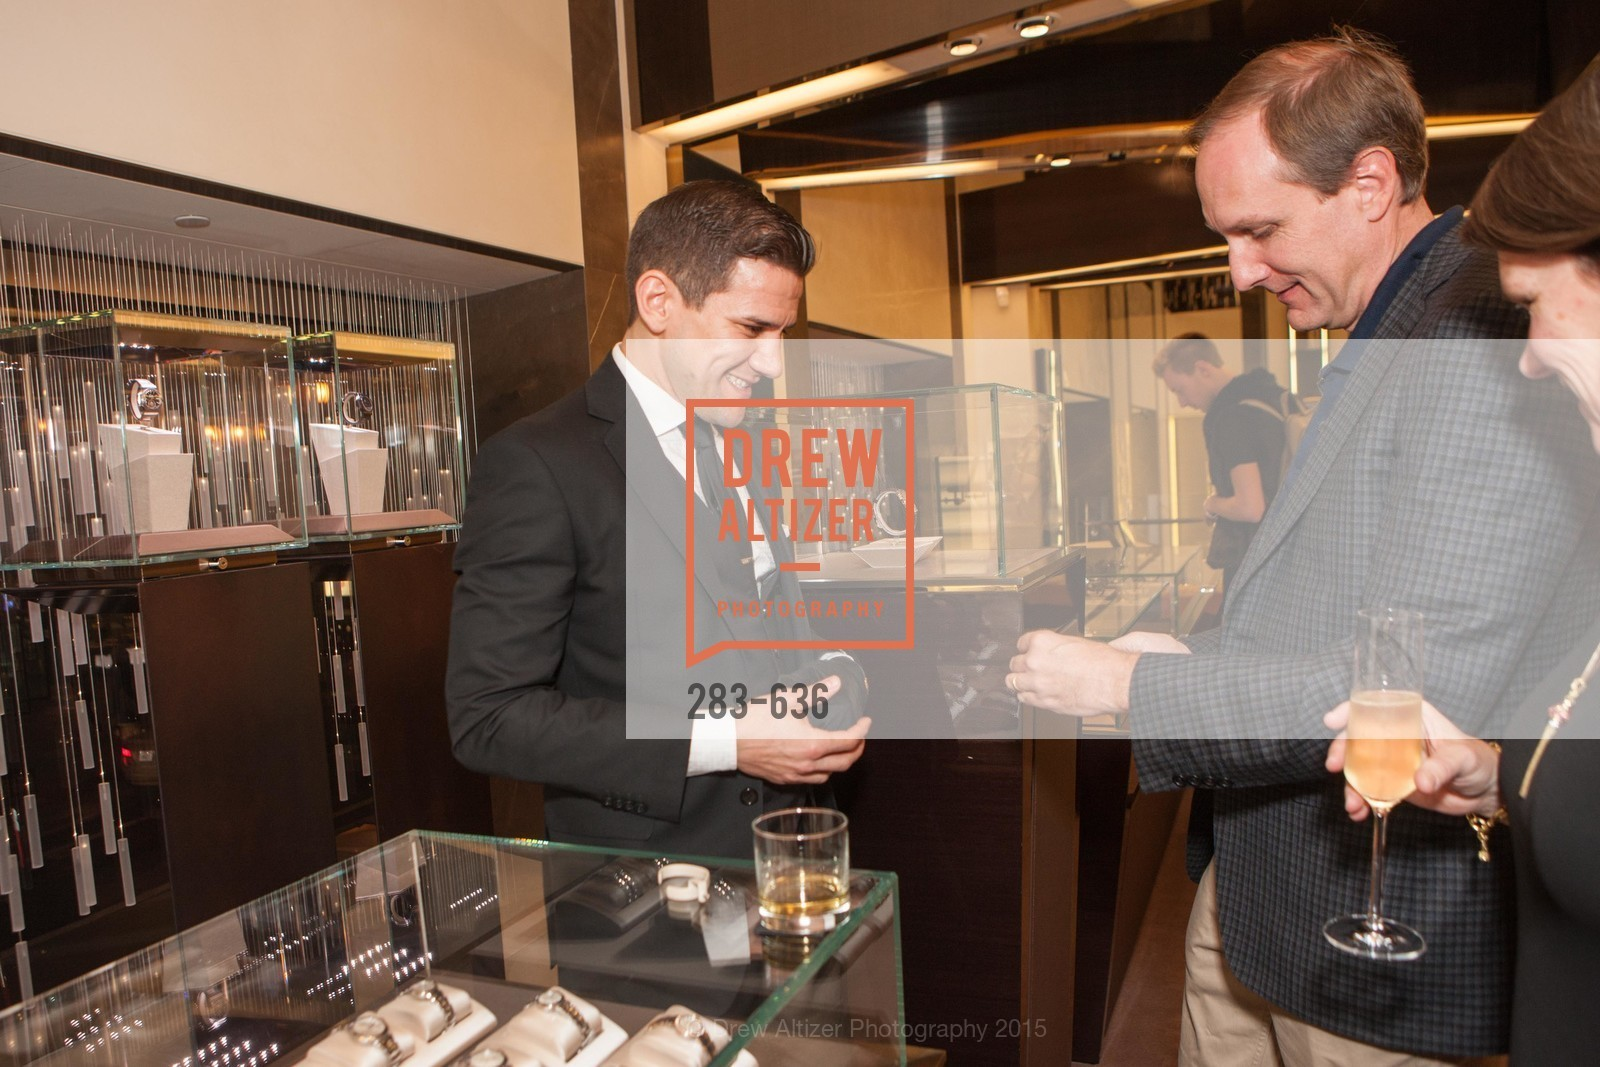 Salvatore Scotto, Jared Wilson, Bulgari San Francisco Presents WINE, WHISKEY & WATCHES, Bulgari San Francisco. 200 Stockton Street, December 8th, 2015,Drew Altizer, Drew Altizer Photography, full-service agency, private events, San Francisco photographer, photographer california